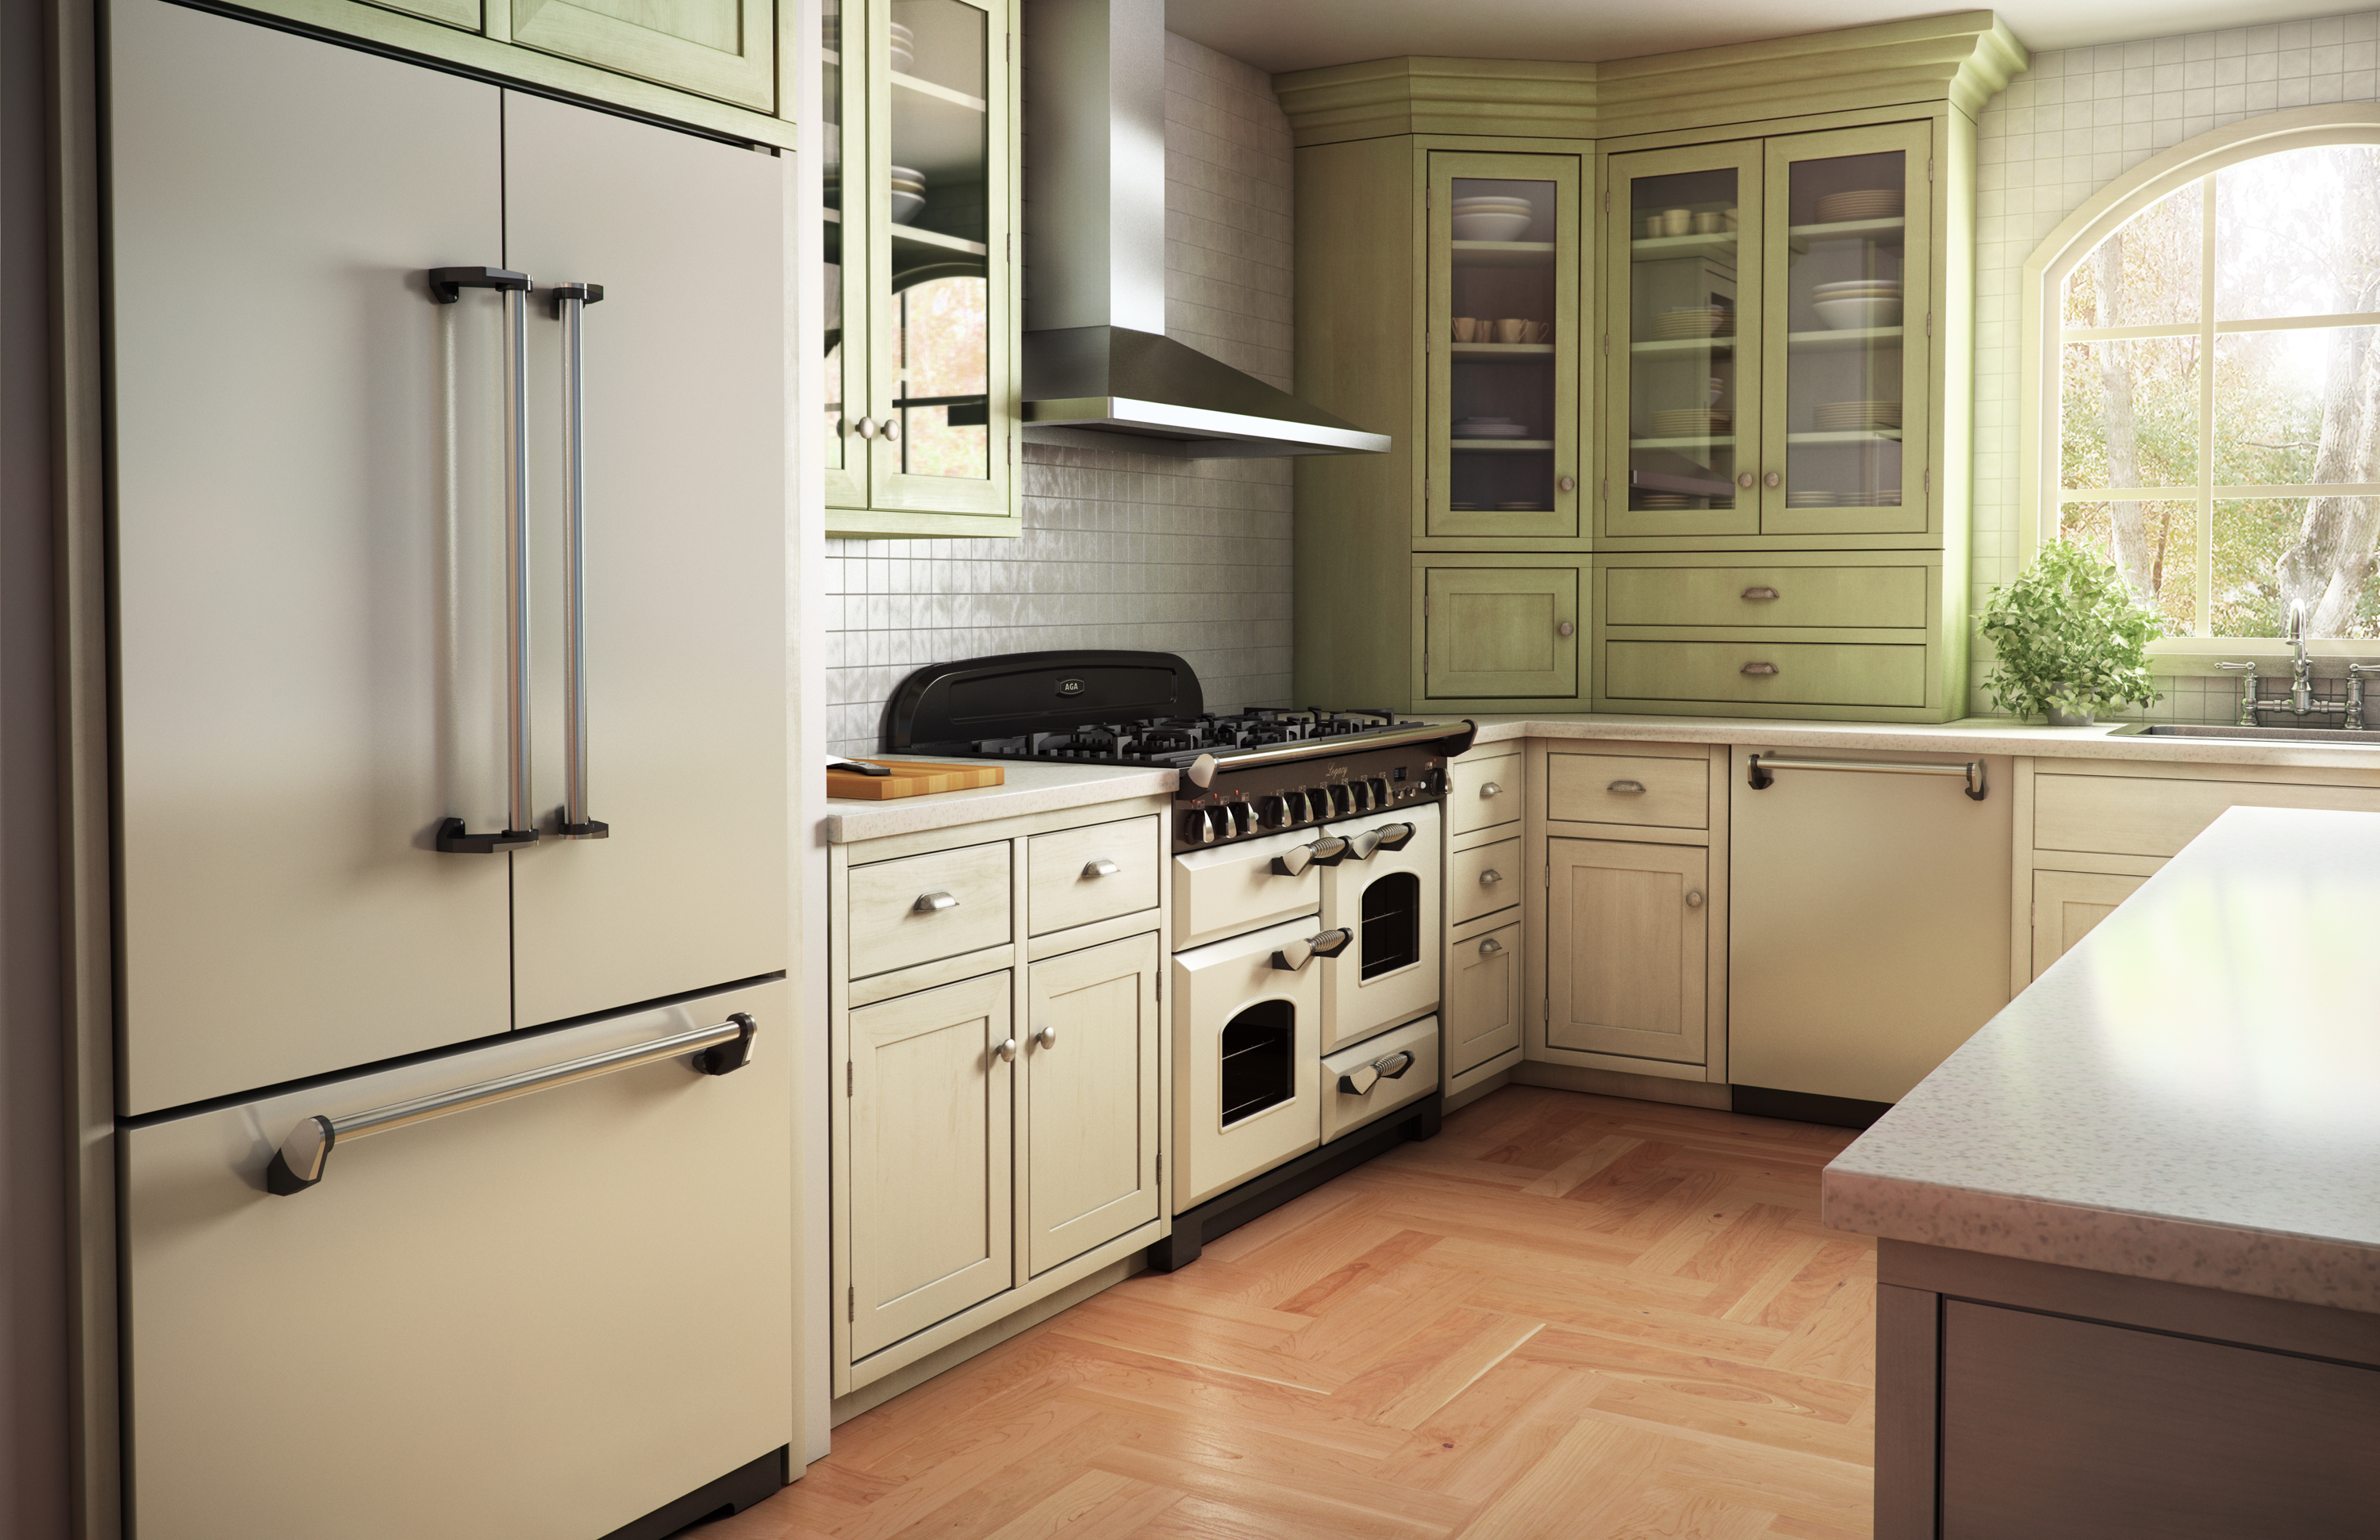 All White Kitchens With White Appliances What 39s Wrong With White Appliances